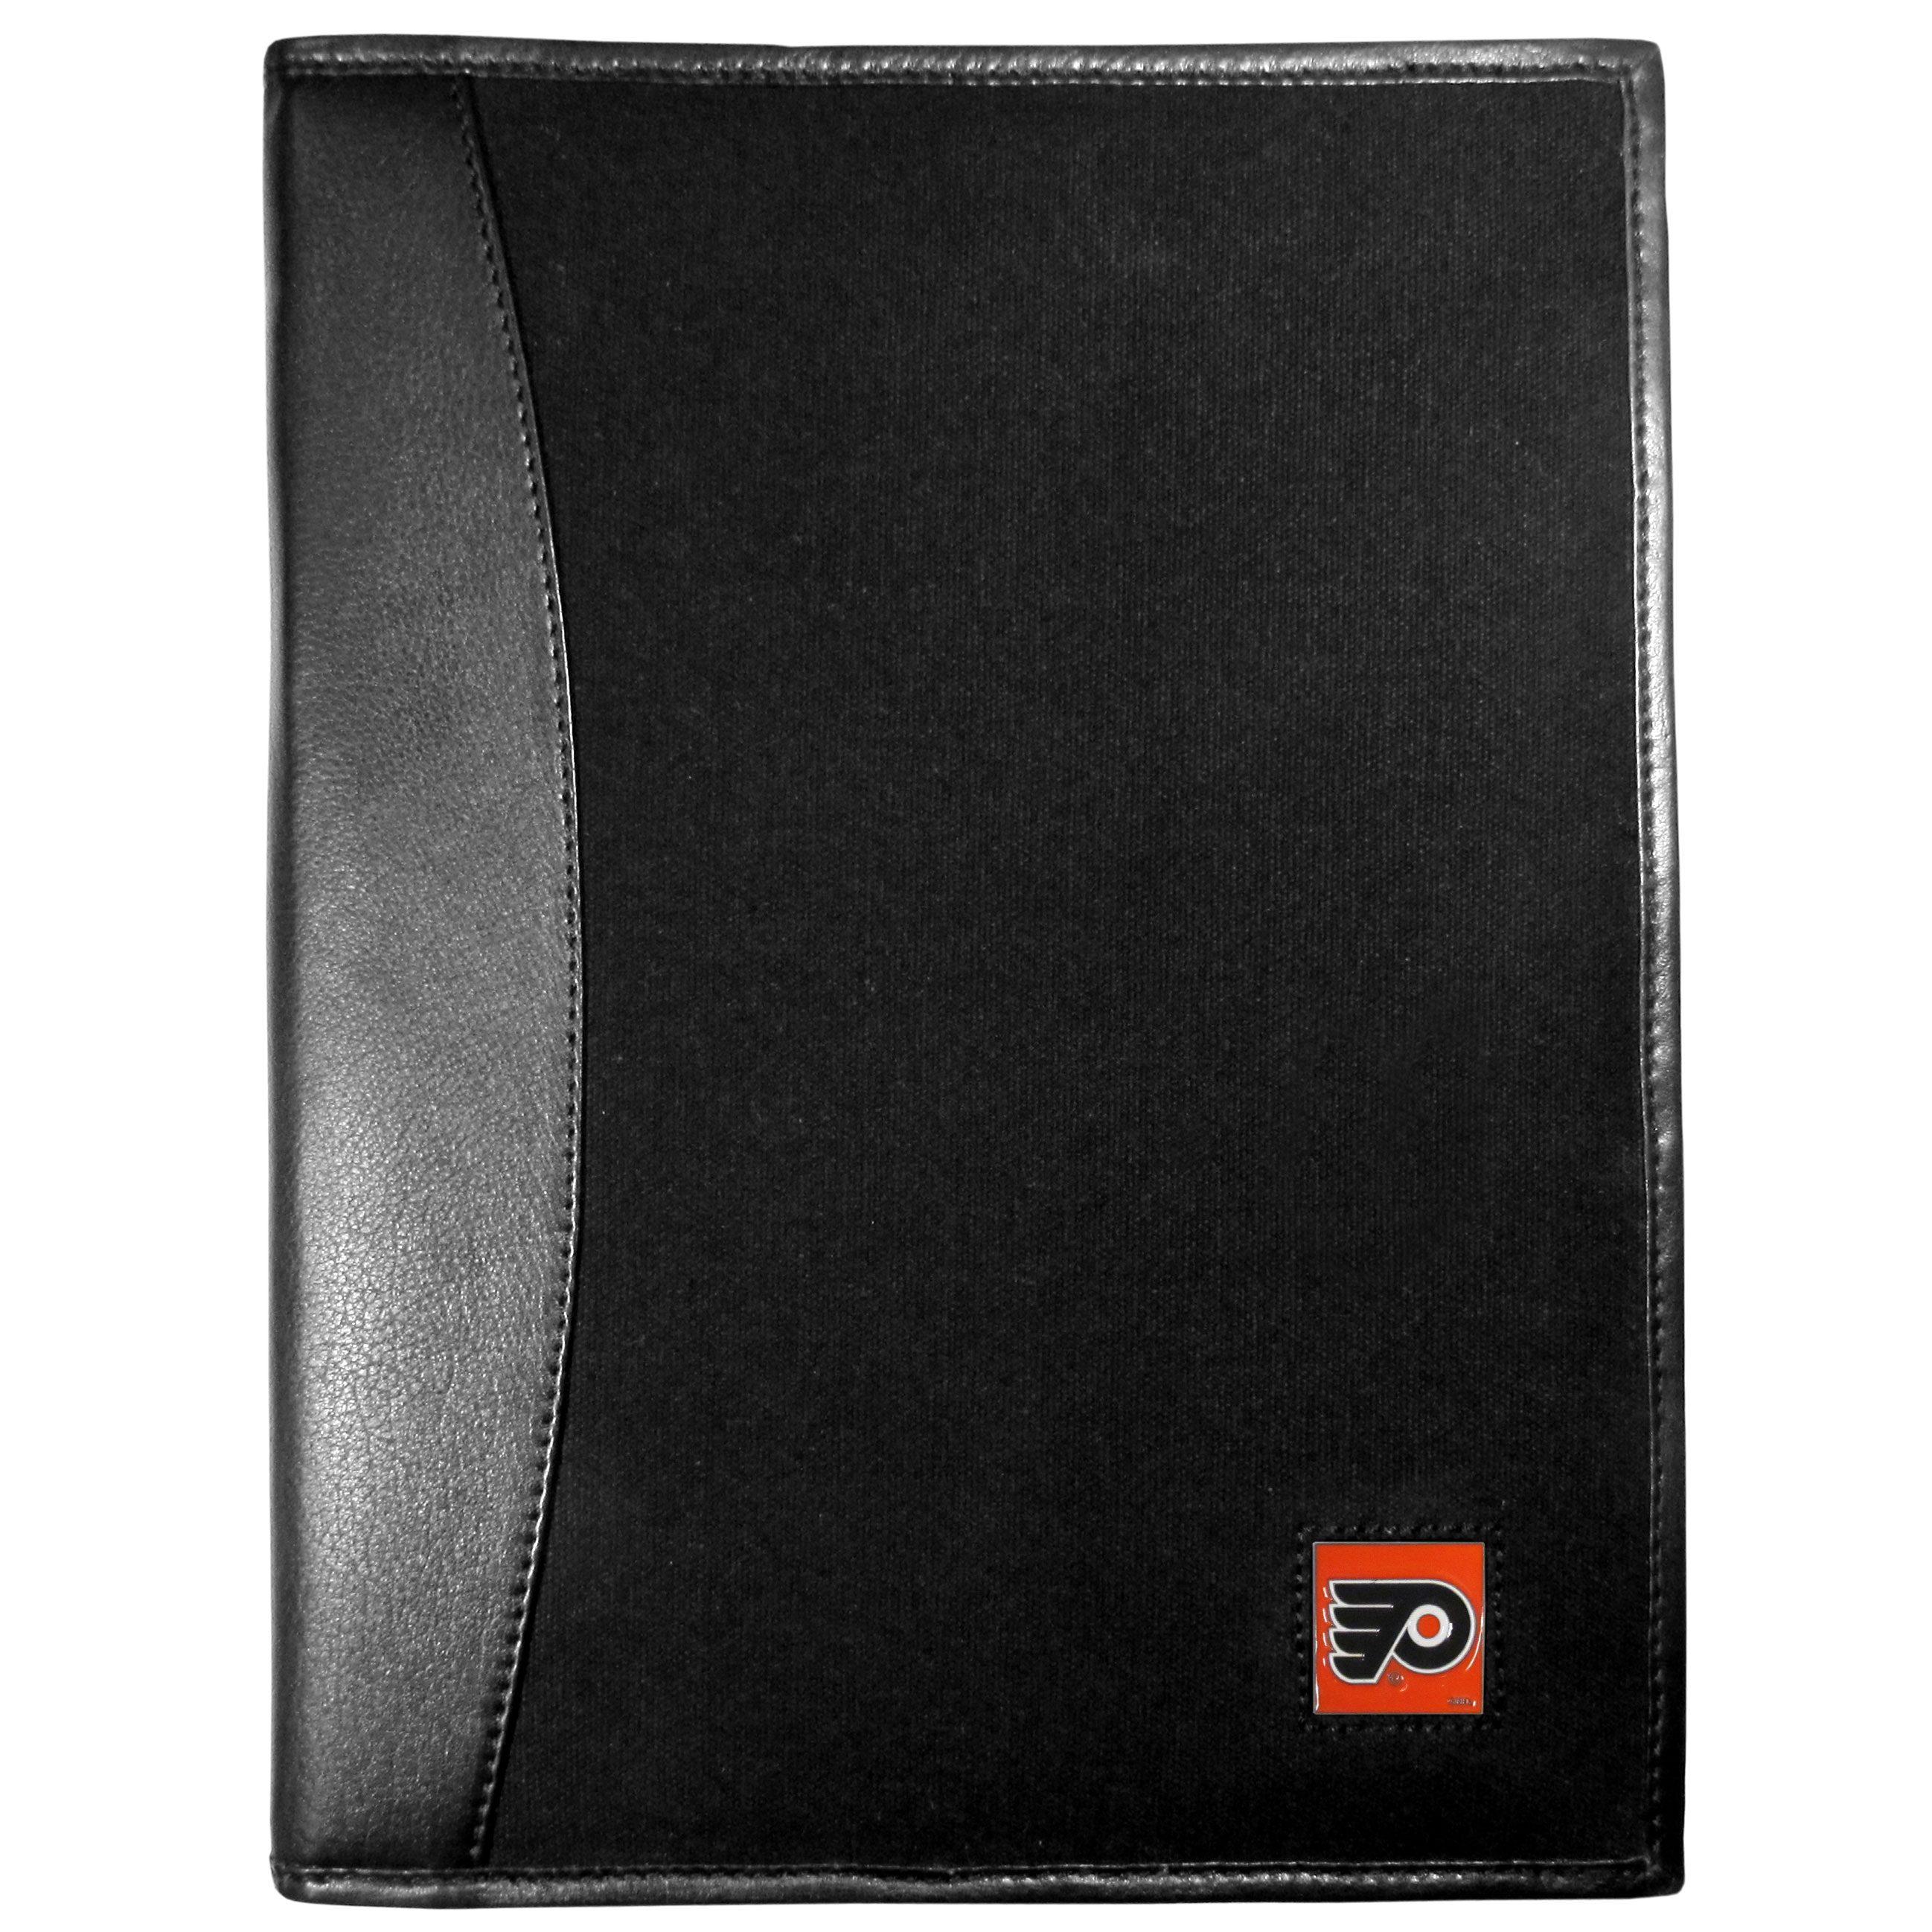 Philadelphia Flyers® Leather and Canvas Padfolio - Our leather and canvas padfolio perfectly blends form and function. The attractive portfolio is bound in fine grain leather with an attractive canvas finish and the interior is a soft nylon. This high quality business accessory also features a fully cast metal Philadelphia Flyers® emblem that is subtly set in the corner of the organizer. It is packed with features like 6 card slots for badges, business cards, hotel keys or credit cards and ID with a large pocket for loose papers and a writing tablet slot making it a must-have for the professional on the go.